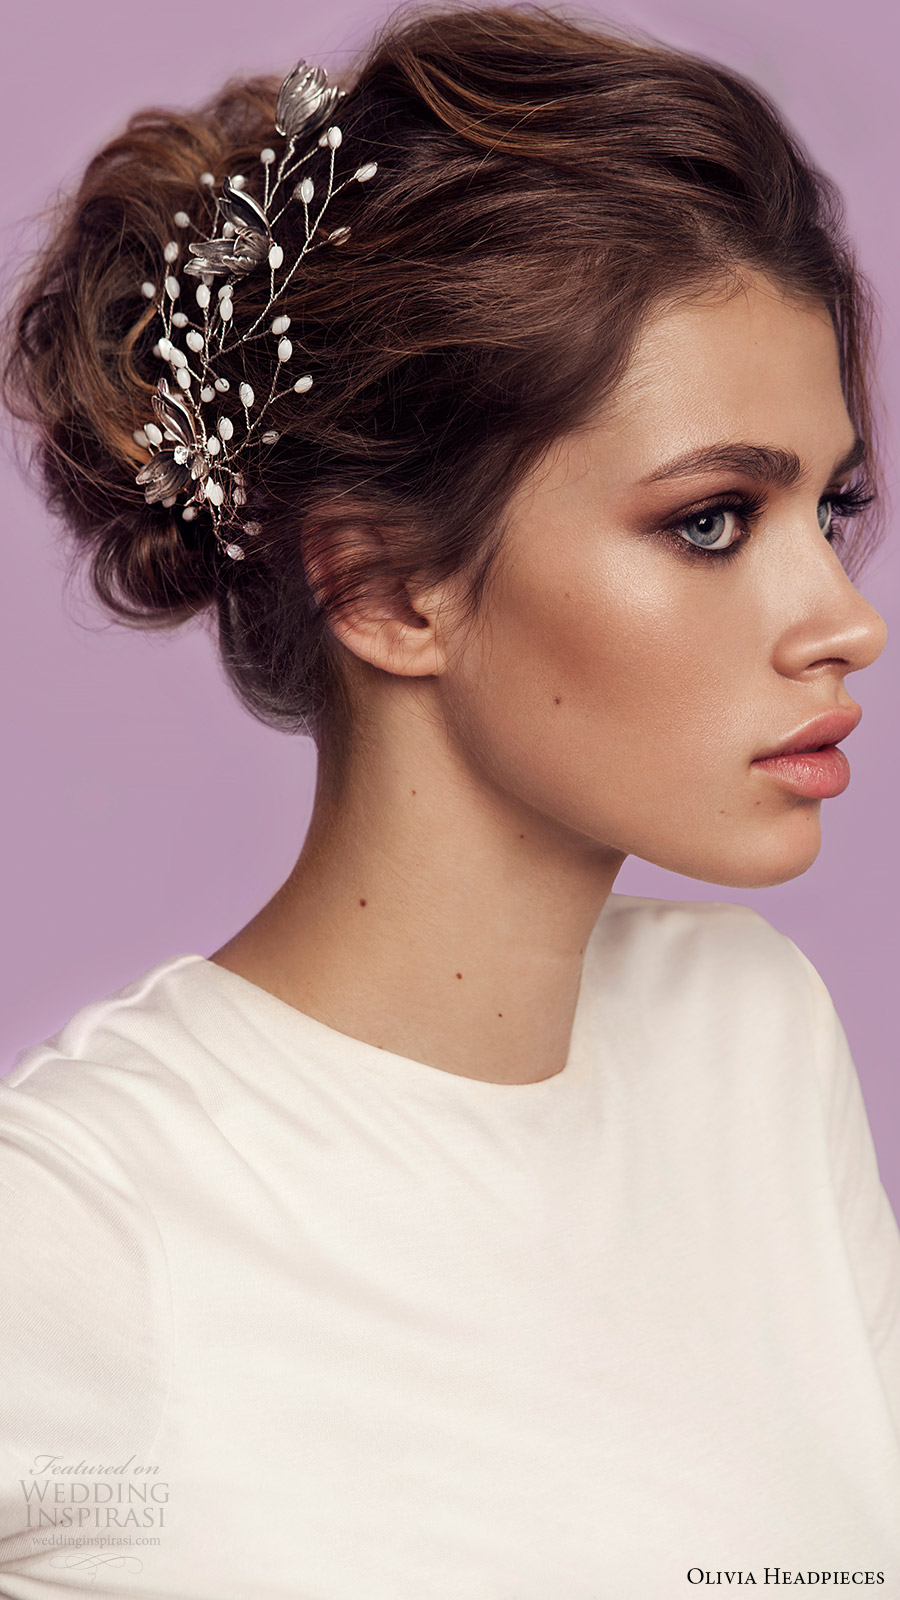 olivia headpieces 2017 bridal accessories east side hair vine silver